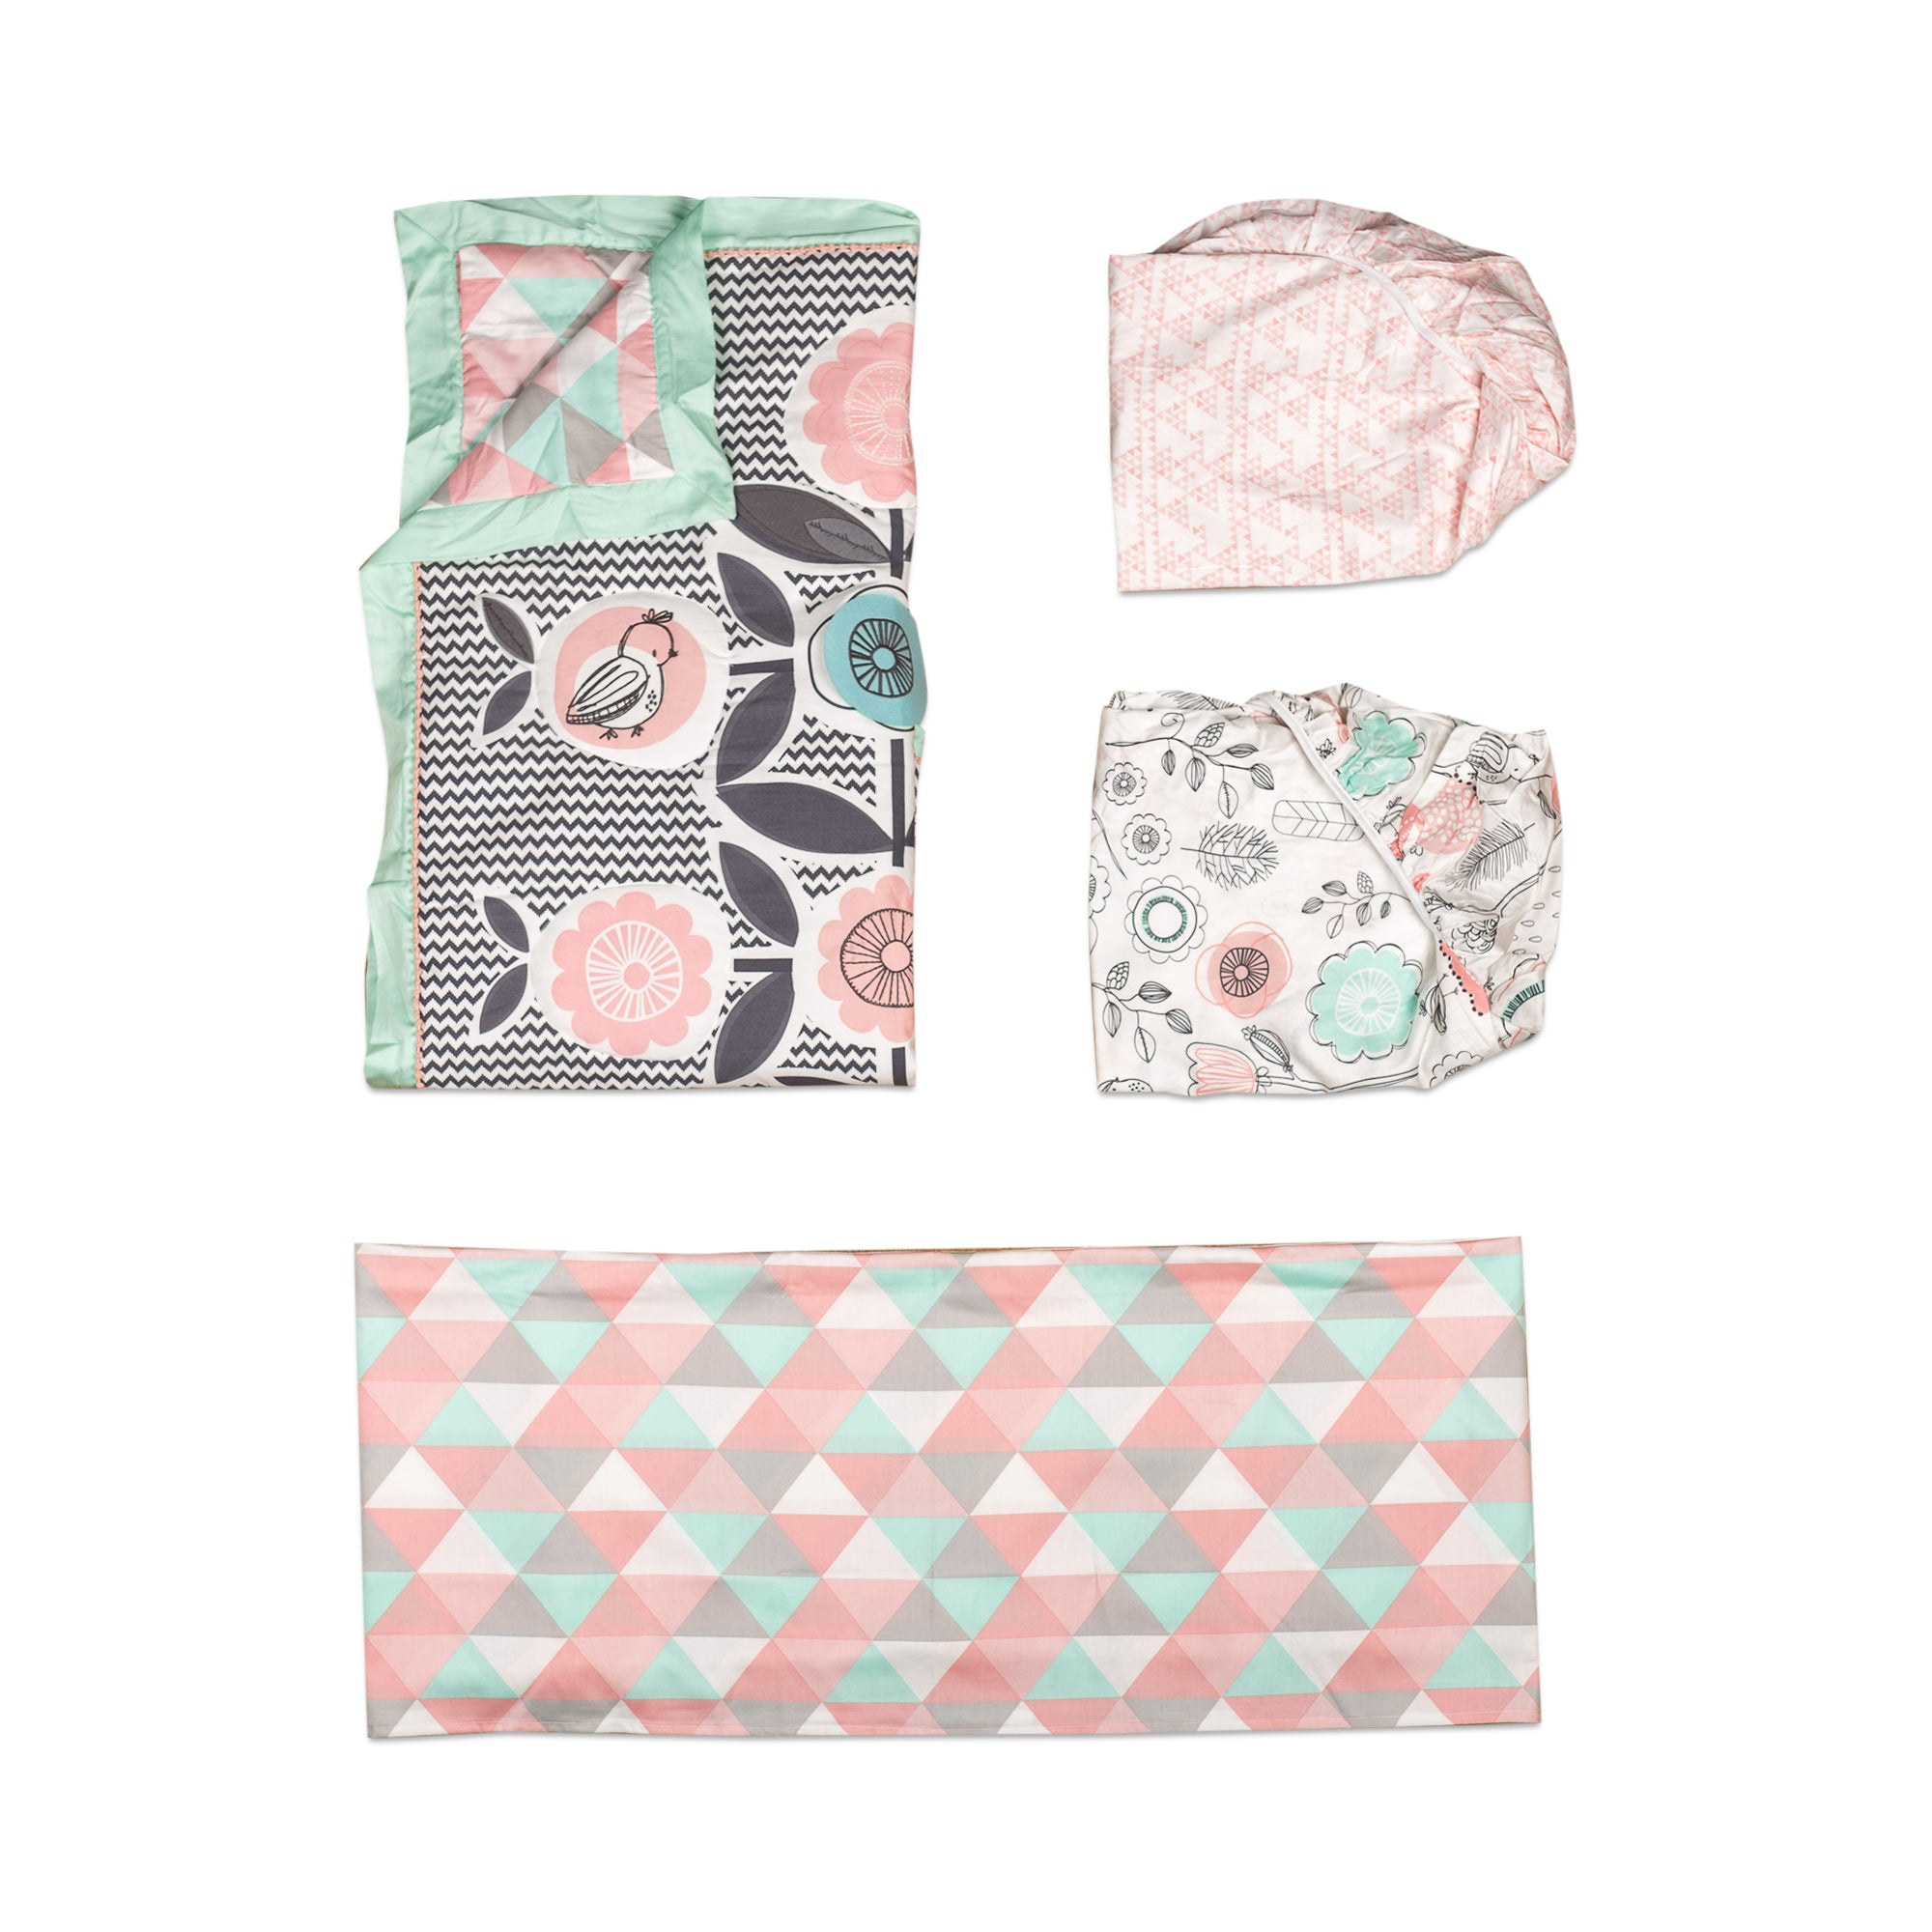 And Bed Skirt Lolli Living 4 Piece Baby Bedding Crib Set With Sparrow Pattern Complete Set With Quilt 2 Fitted Sheets Bedding Sets Baby